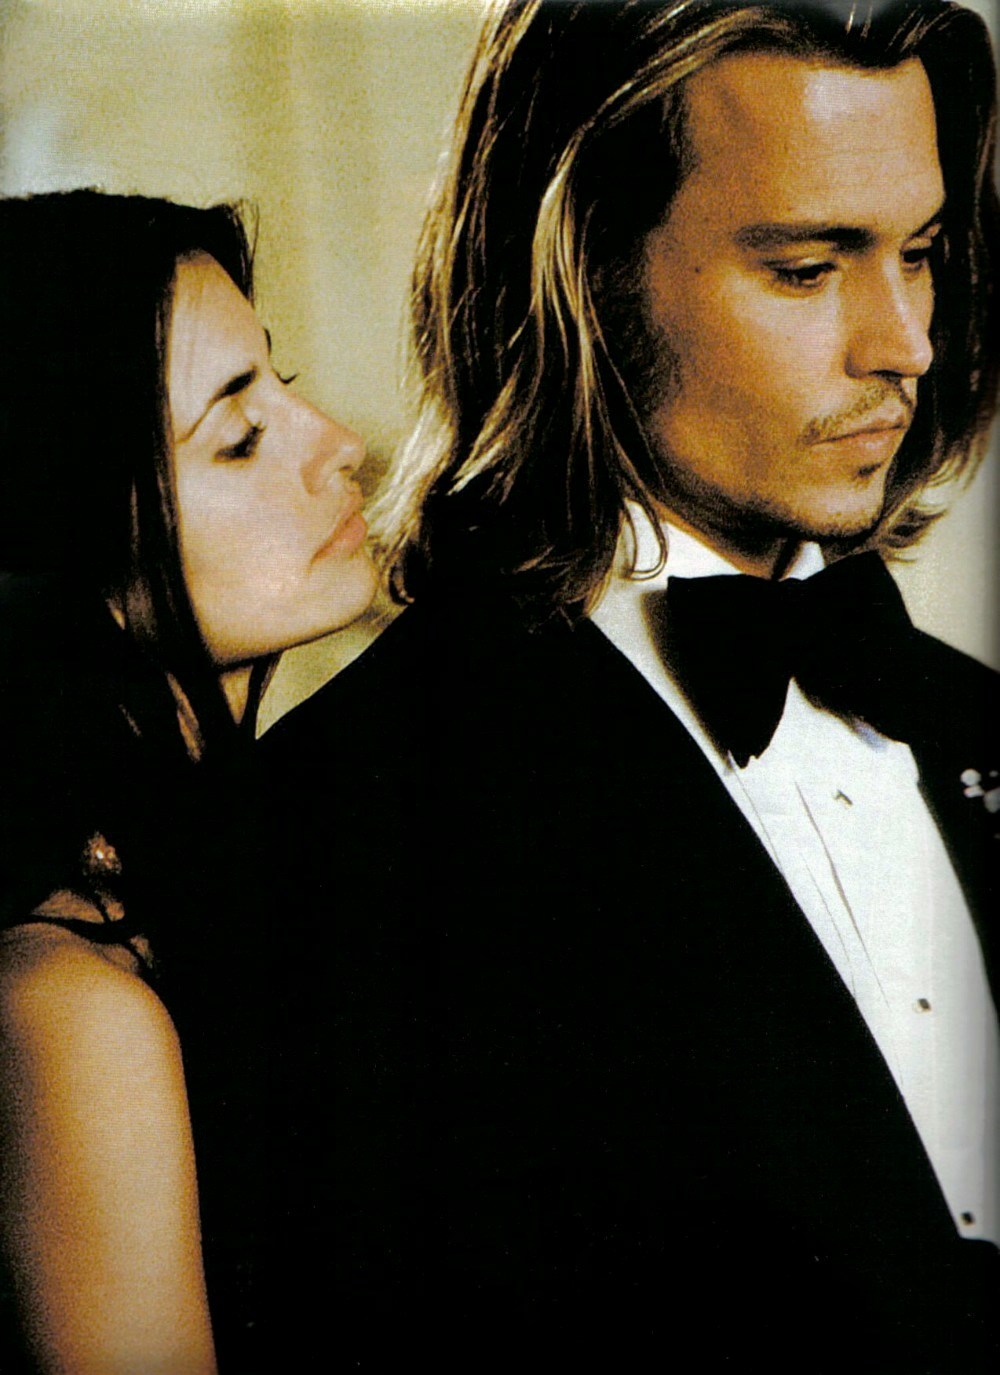 an analysis of johnny depp in the movie blow Johnny depp, born june 9th, 1963 in owensboro, kentucky - self-proclaimed barbeque capital of the world - has led an interesting life filled with the normal ups and downs associated with the life of a worldly famous tv/film star with a twist.